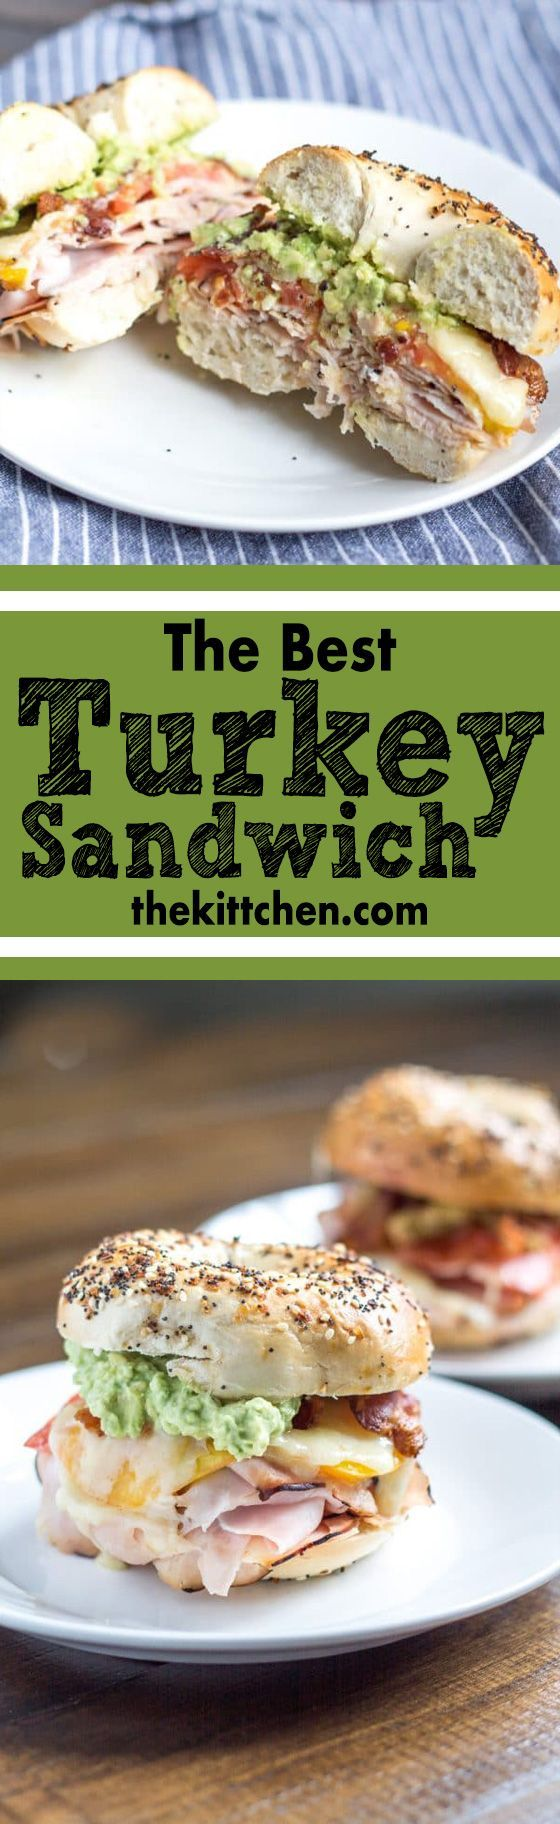 The best turkey sandwich that's super easy to make! ***************************************** Lunch ideas | Lunch recipes | Sandwiches | Sandwich recipes | Easy lunch | Turkey recipes